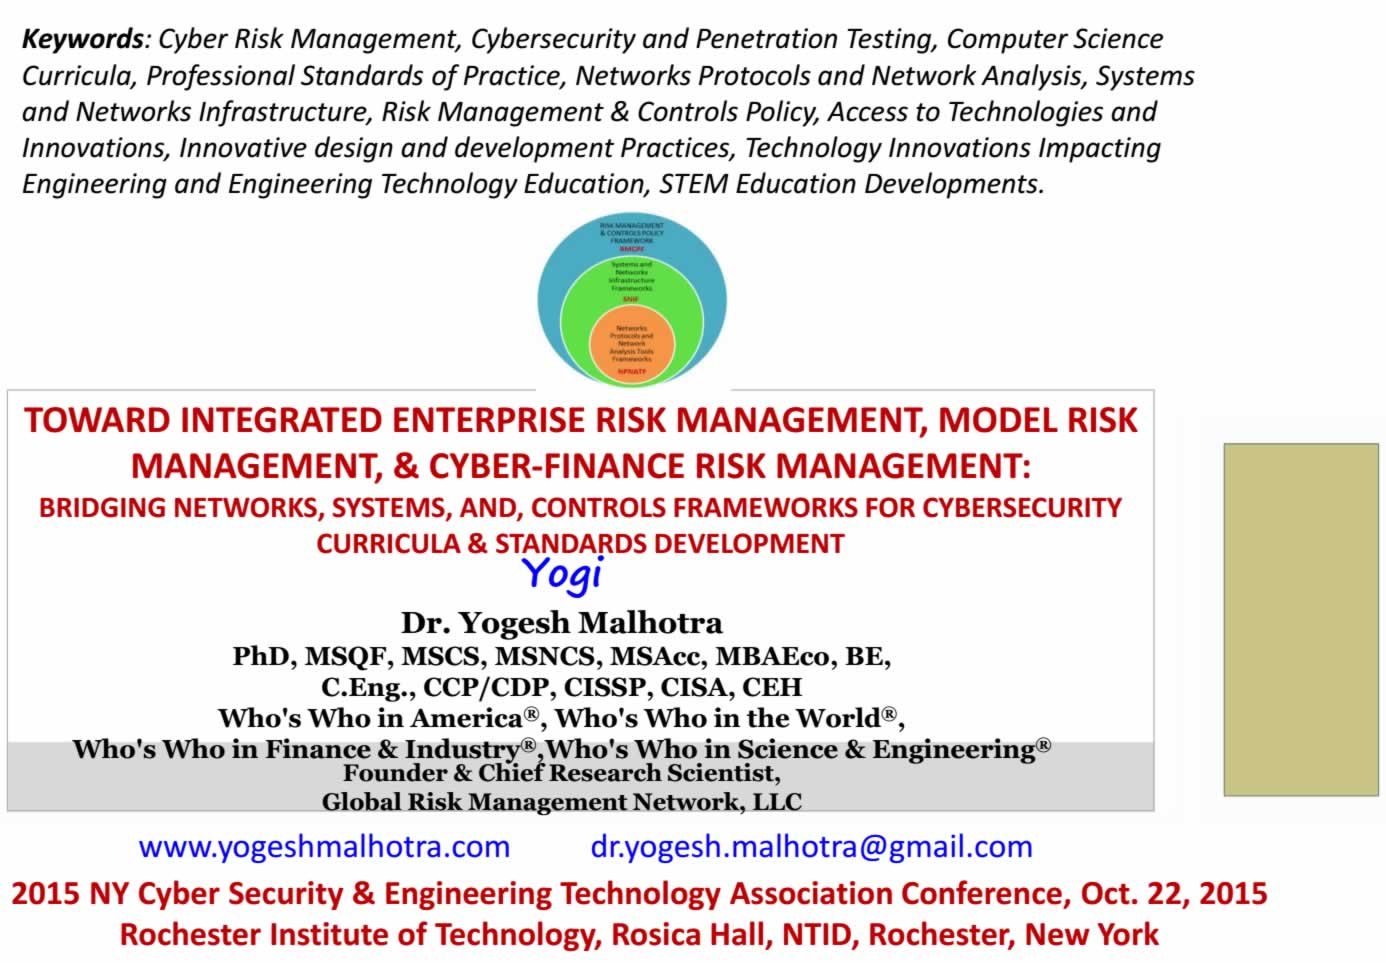 2015 New York Cyber Security and Engineering Technology Association Conference